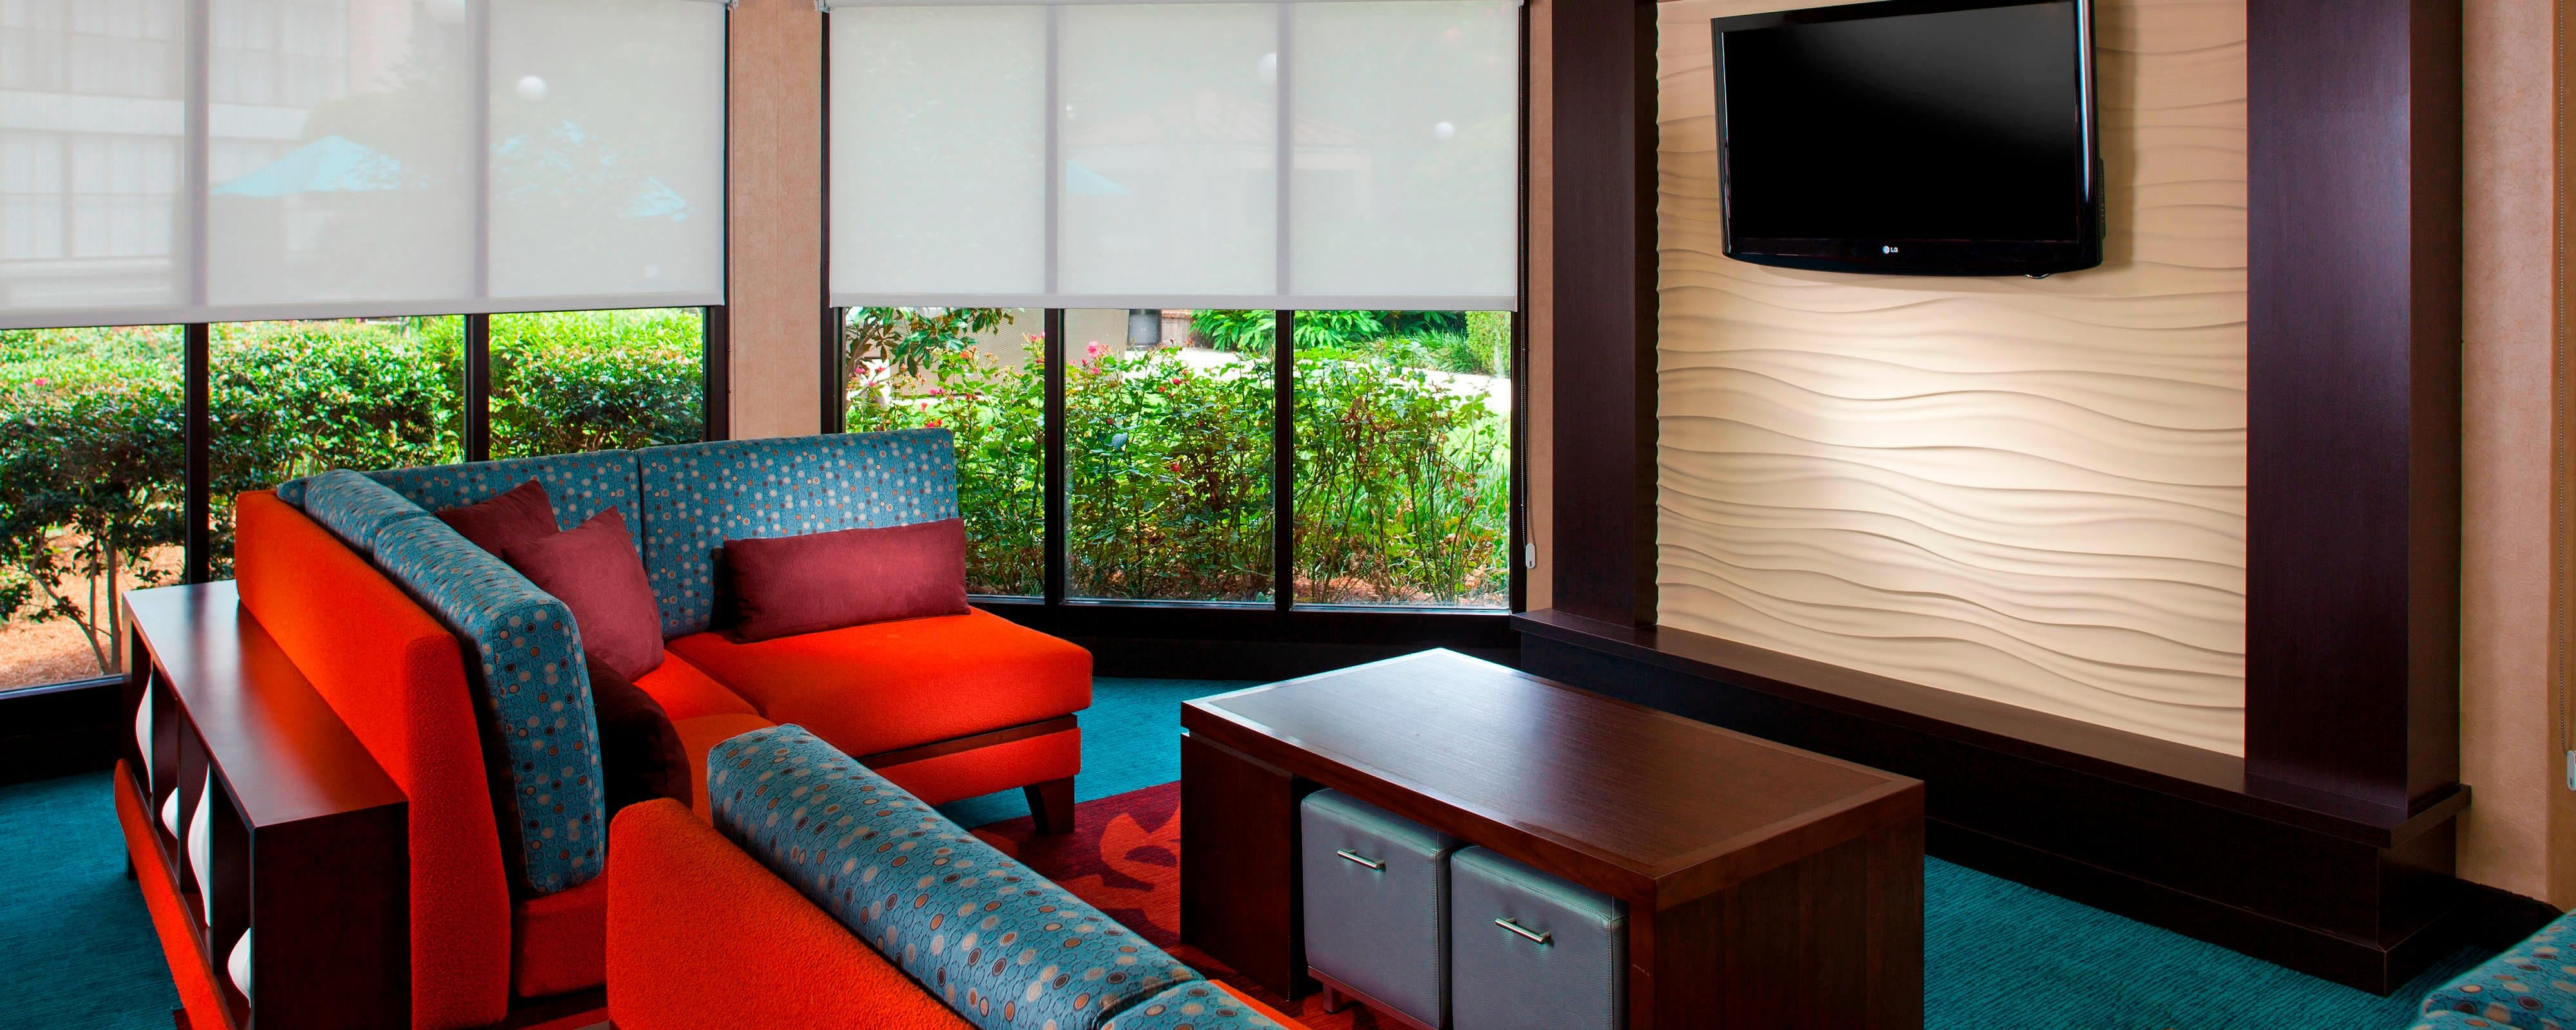 Residence Inn New Orleans Lounge